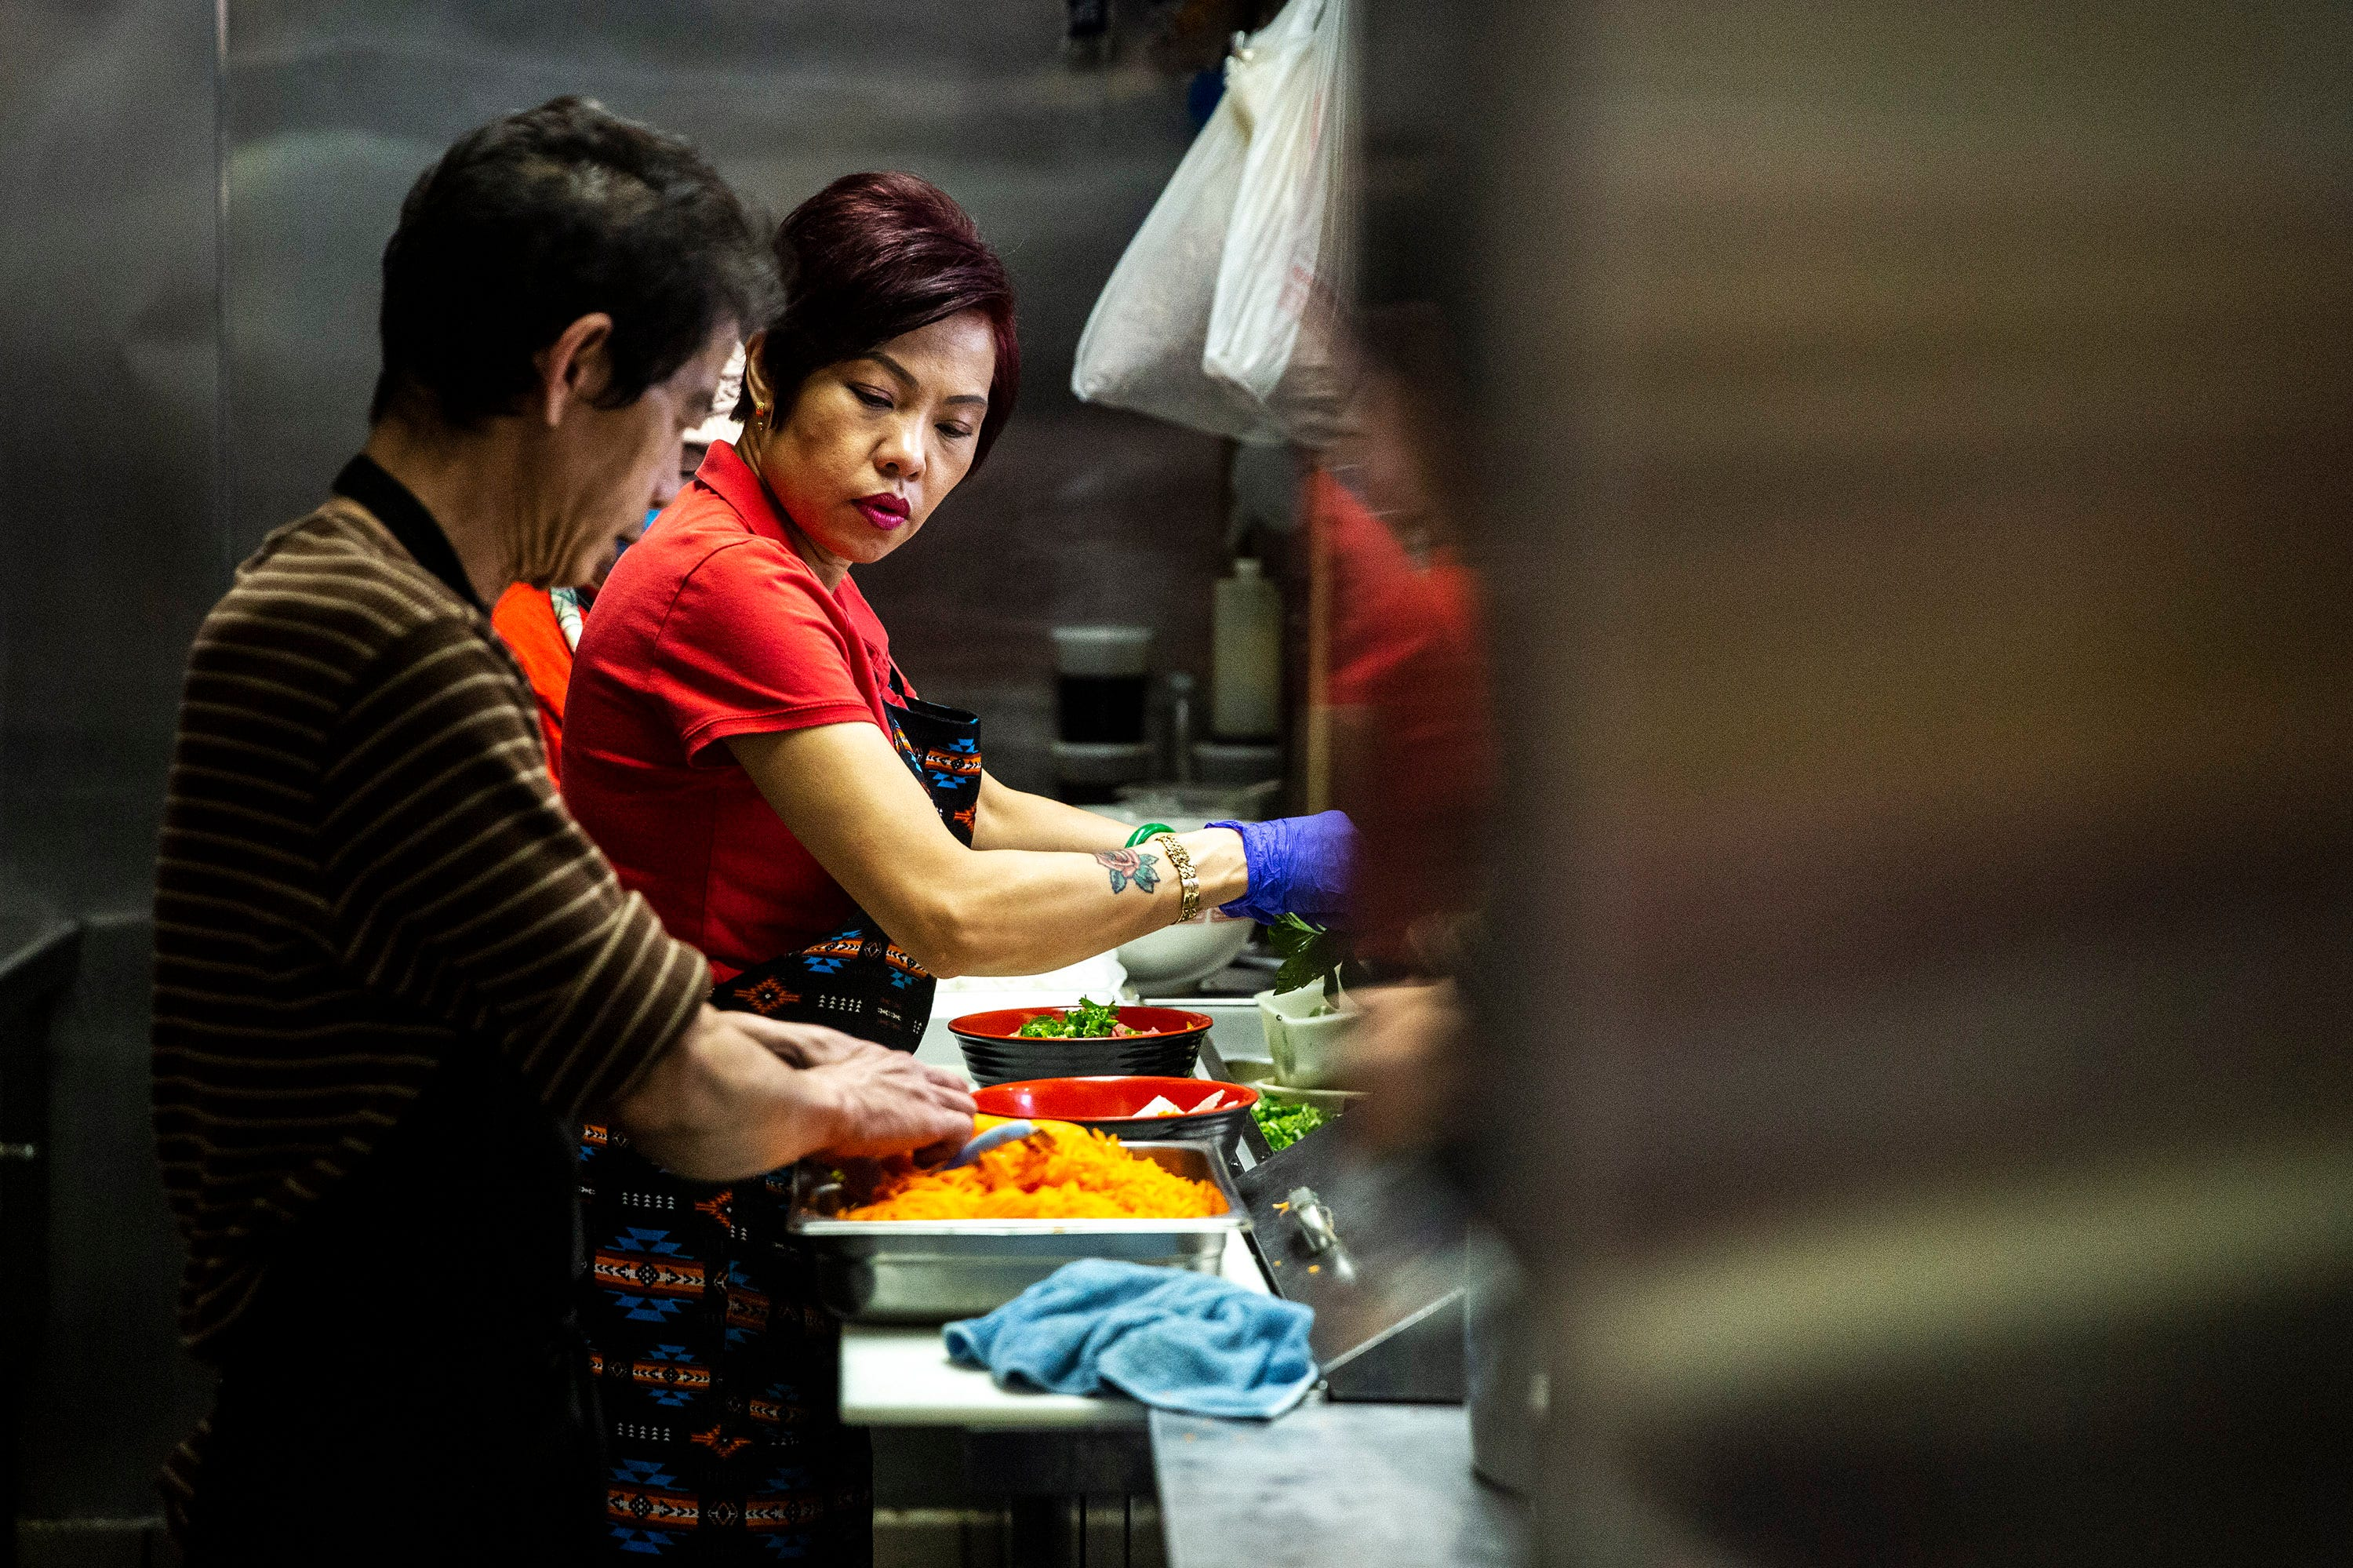 Brenda Tran, owner of the Vietnam Cafe, works in the kitchen with her staff to prep and prepare to-go orders May 3 in the Merle Hay Mall food court in Des Moines, Iowa.